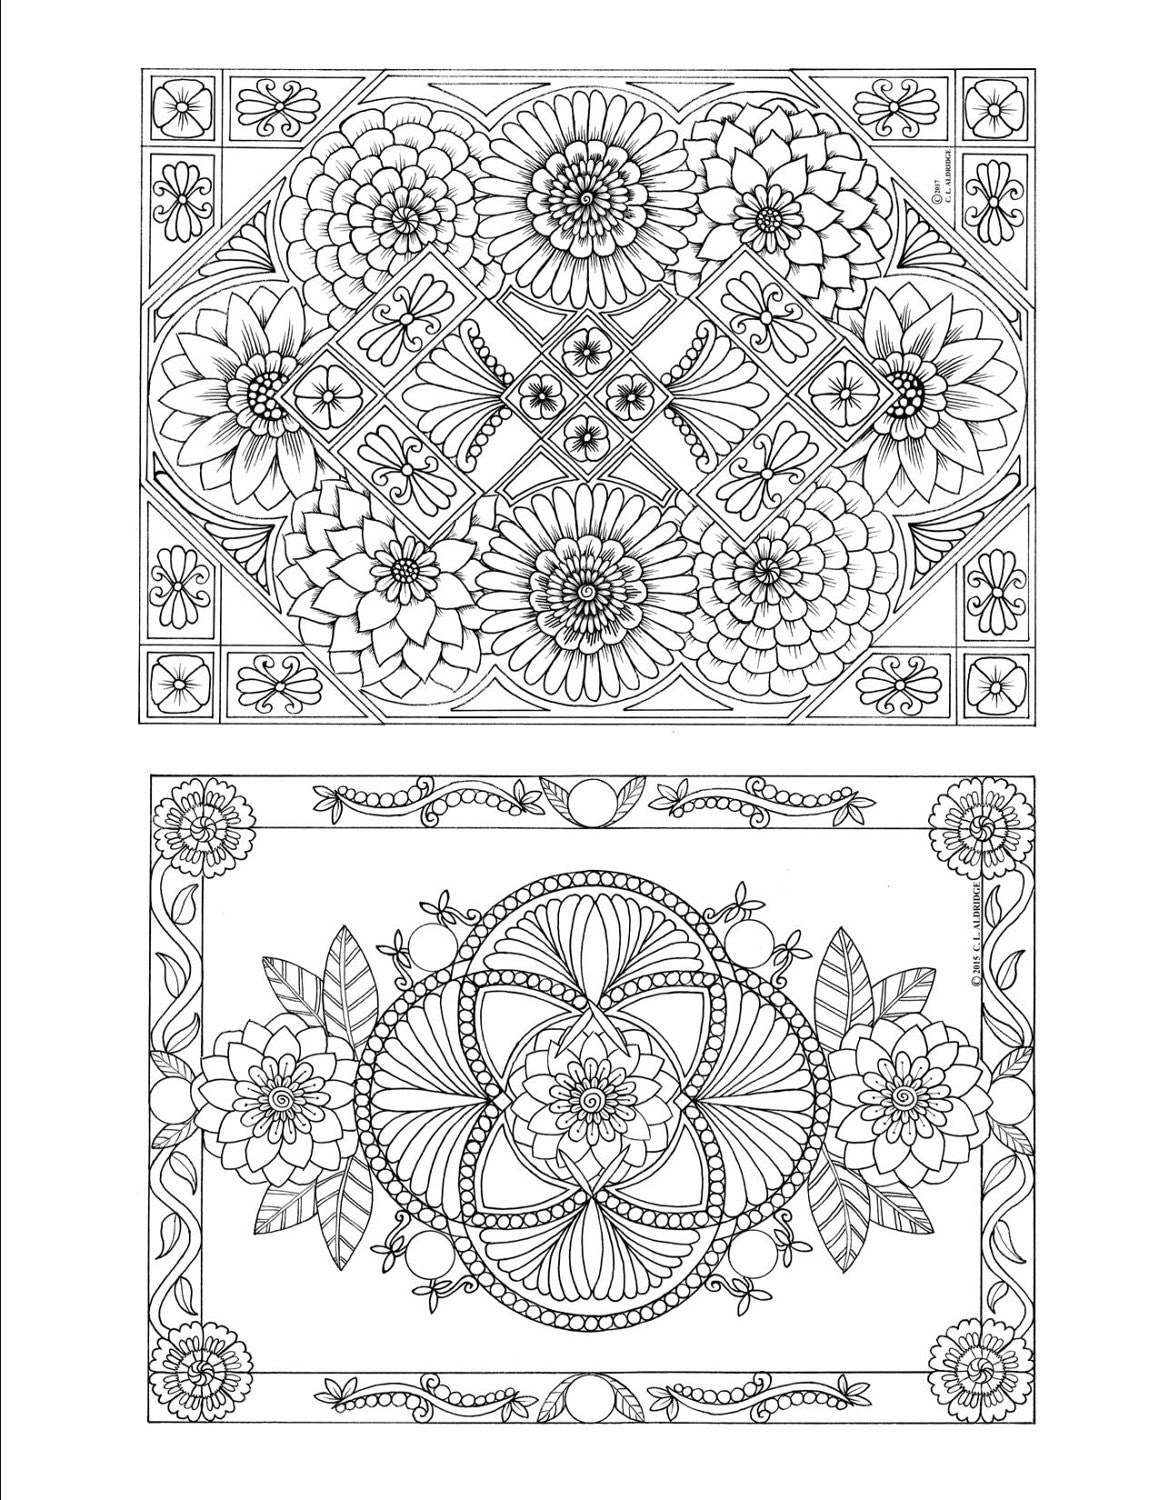 Flowers And Dreams A Coloring Book Of Beautiful Botanical